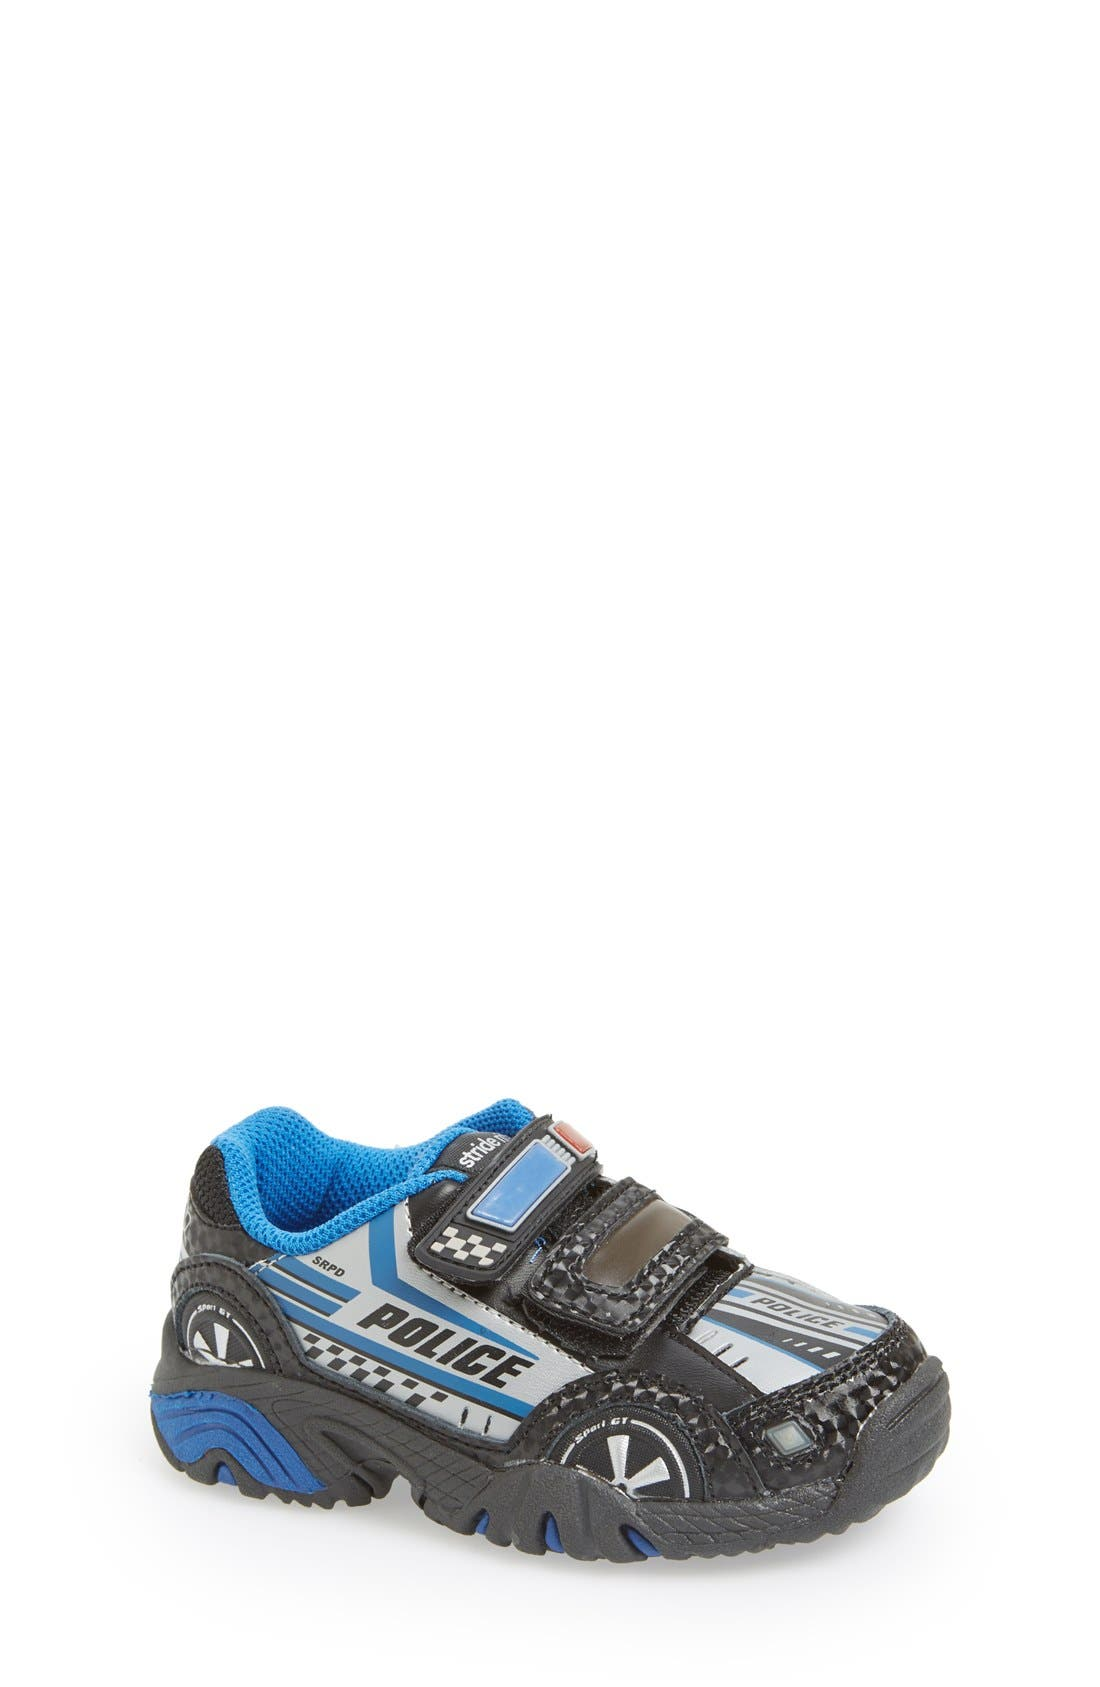 'Vroomz - Police Car' Light-Up Sneaker, Main, color, 001